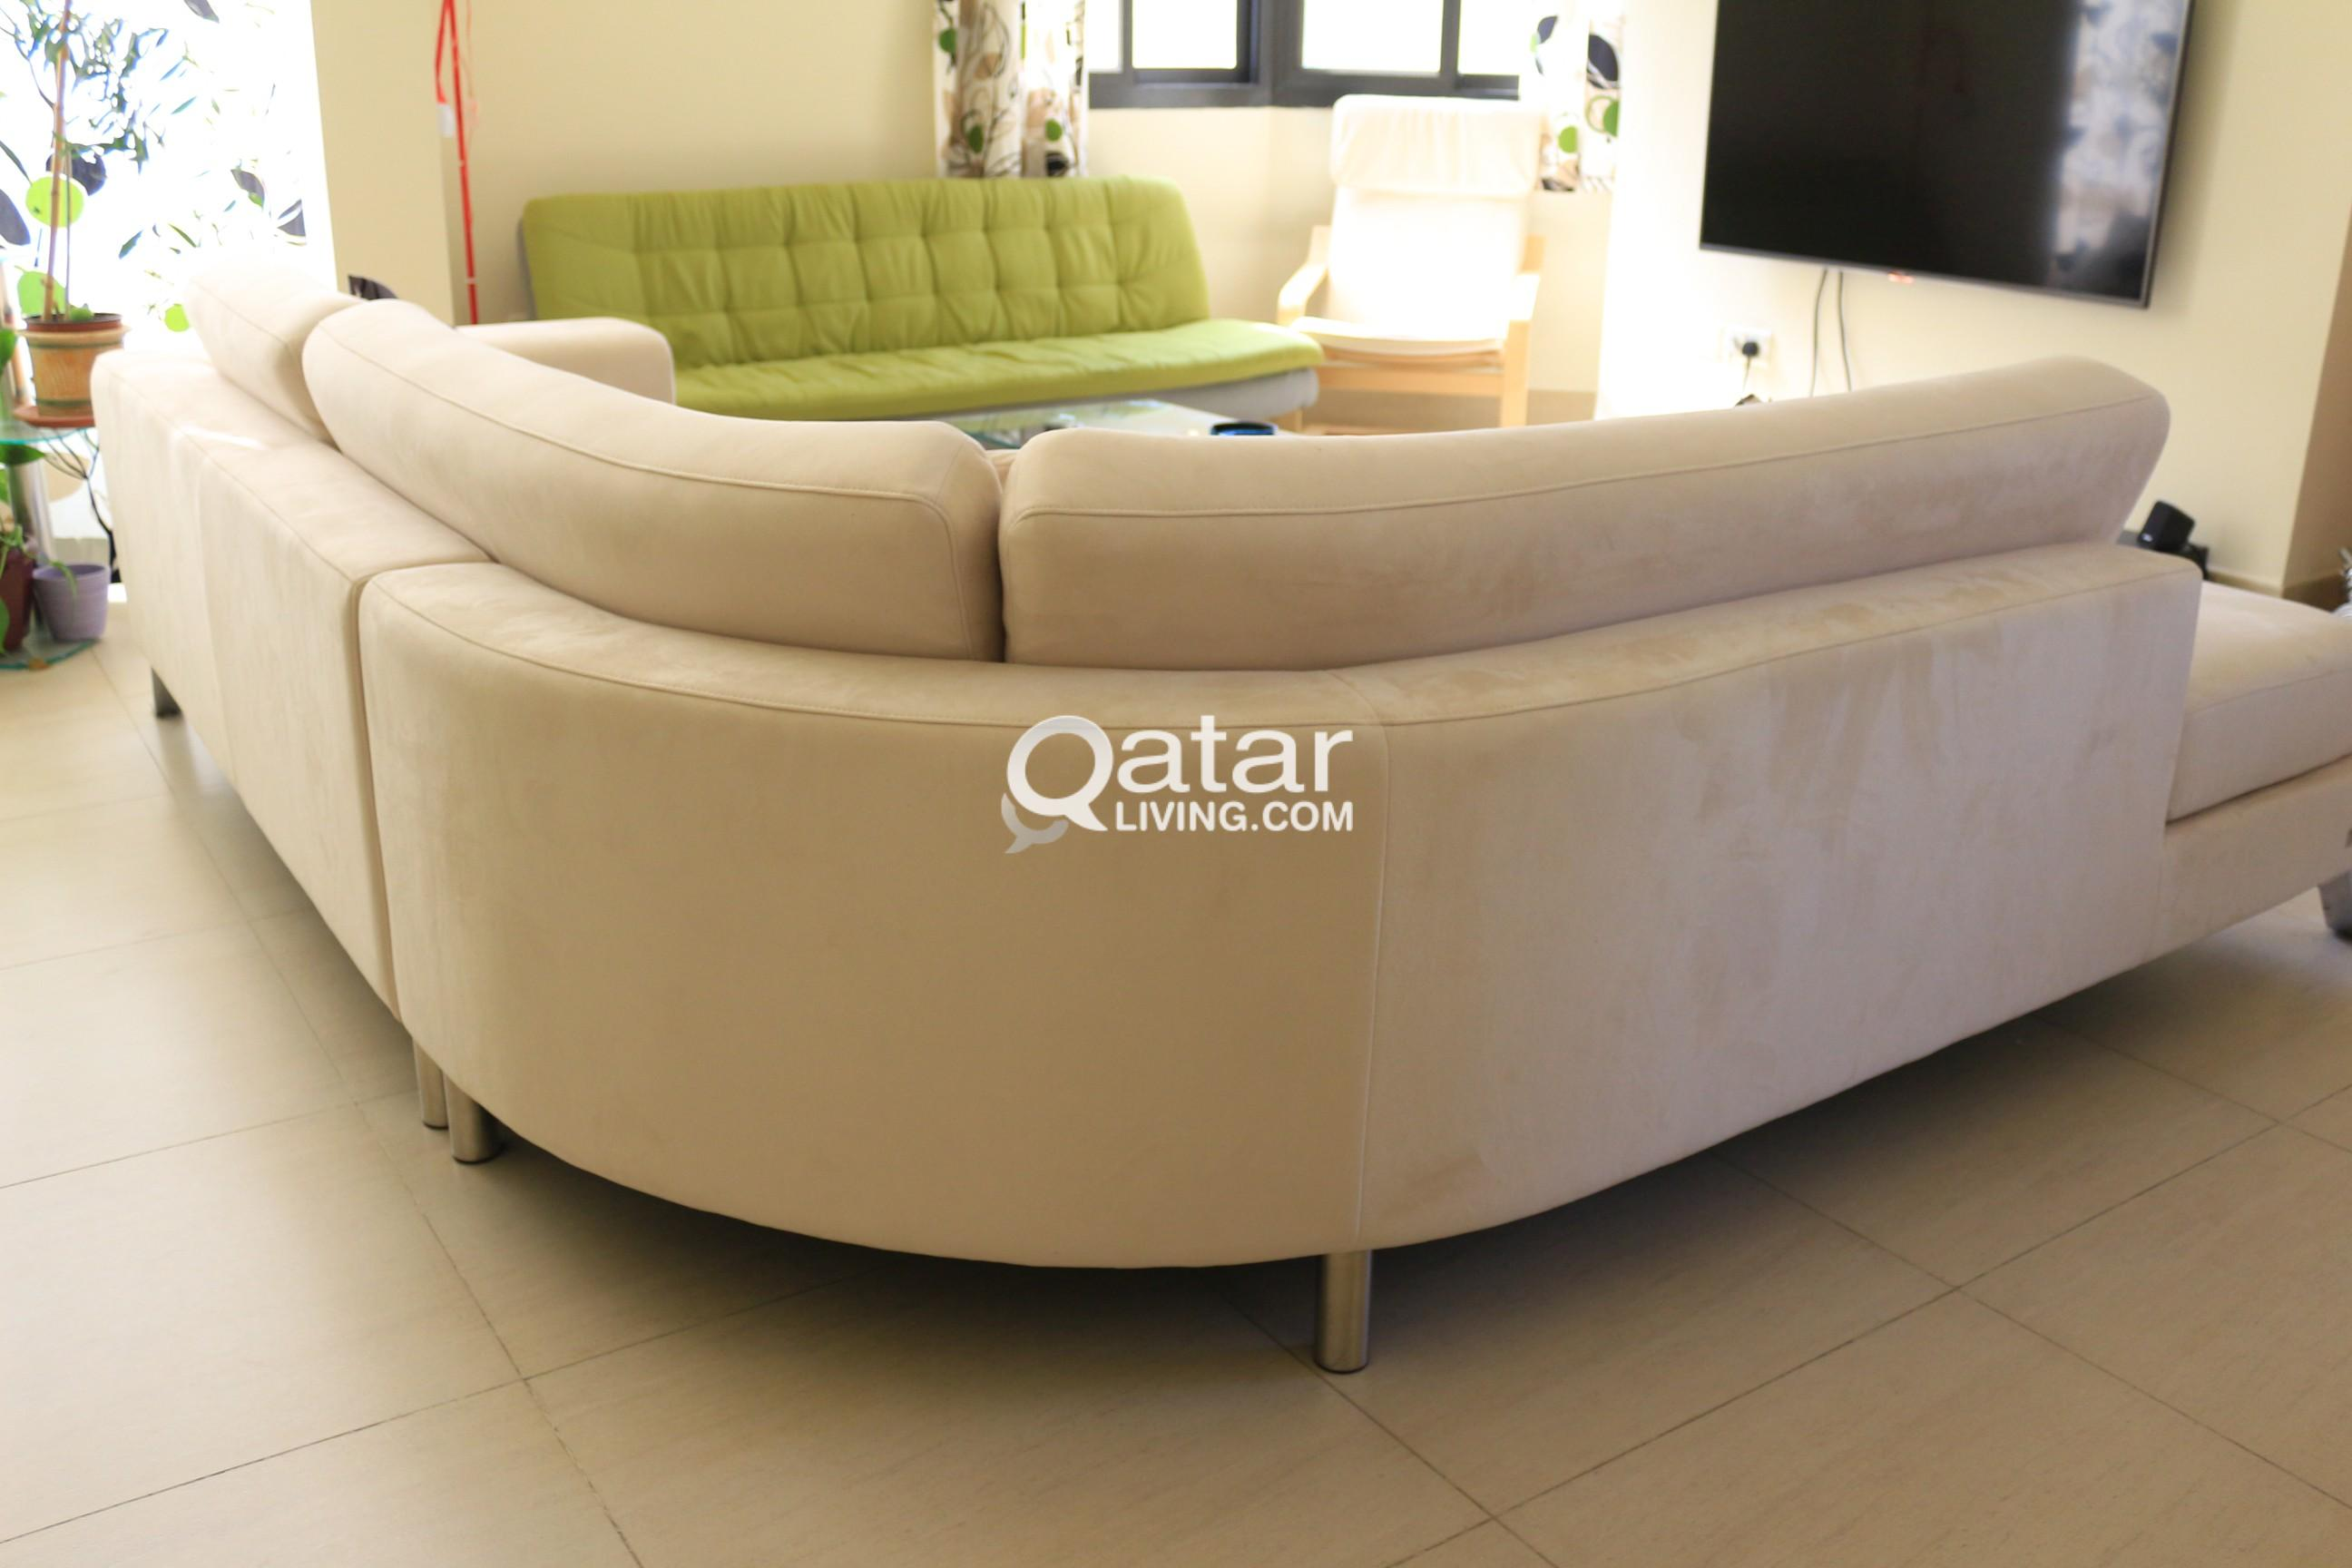 Sofa Set Price In Qatar The One L Shape Beige Sofa Qatar Living